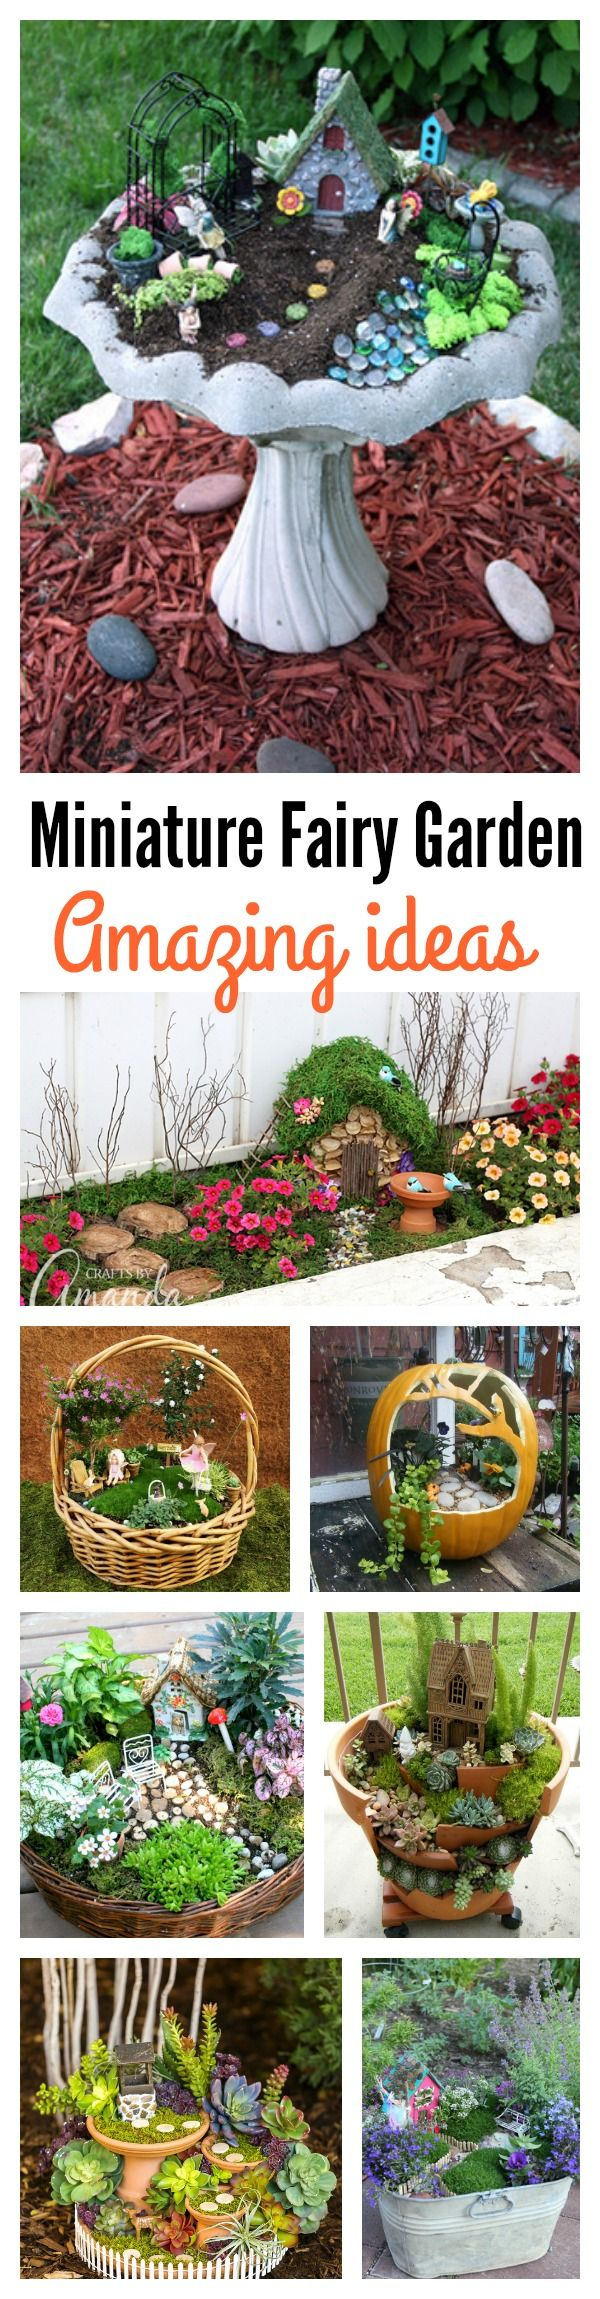 8 Amazing Miniature Fairy Garden DIY Ideas